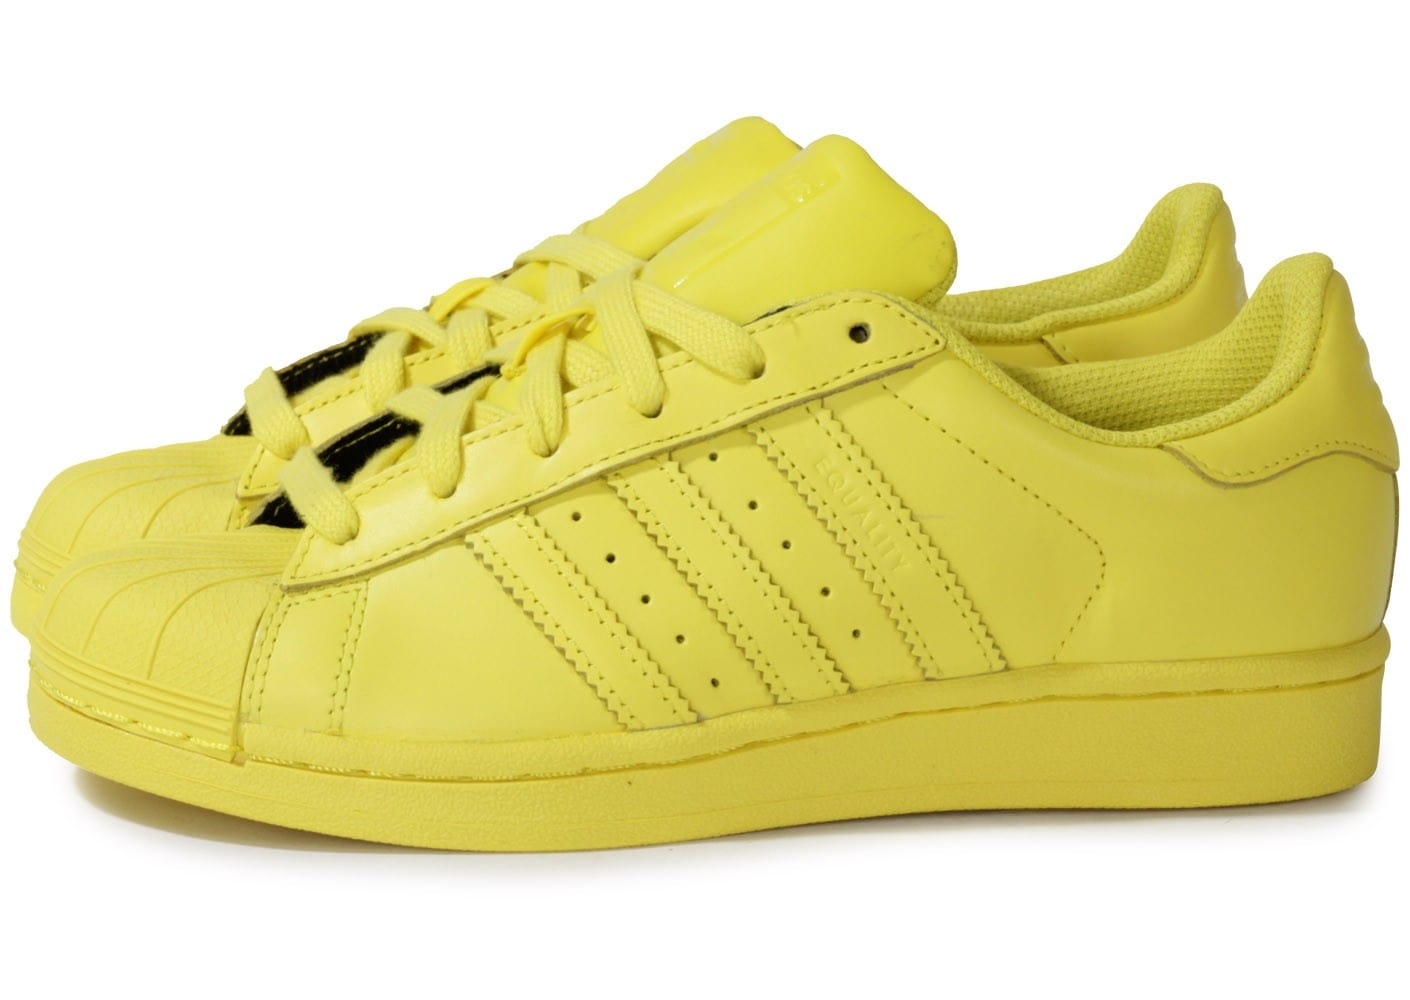 adidas chaussures adidas superstar femme jaune. Black Bedroom Furniture Sets. Home Design Ideas